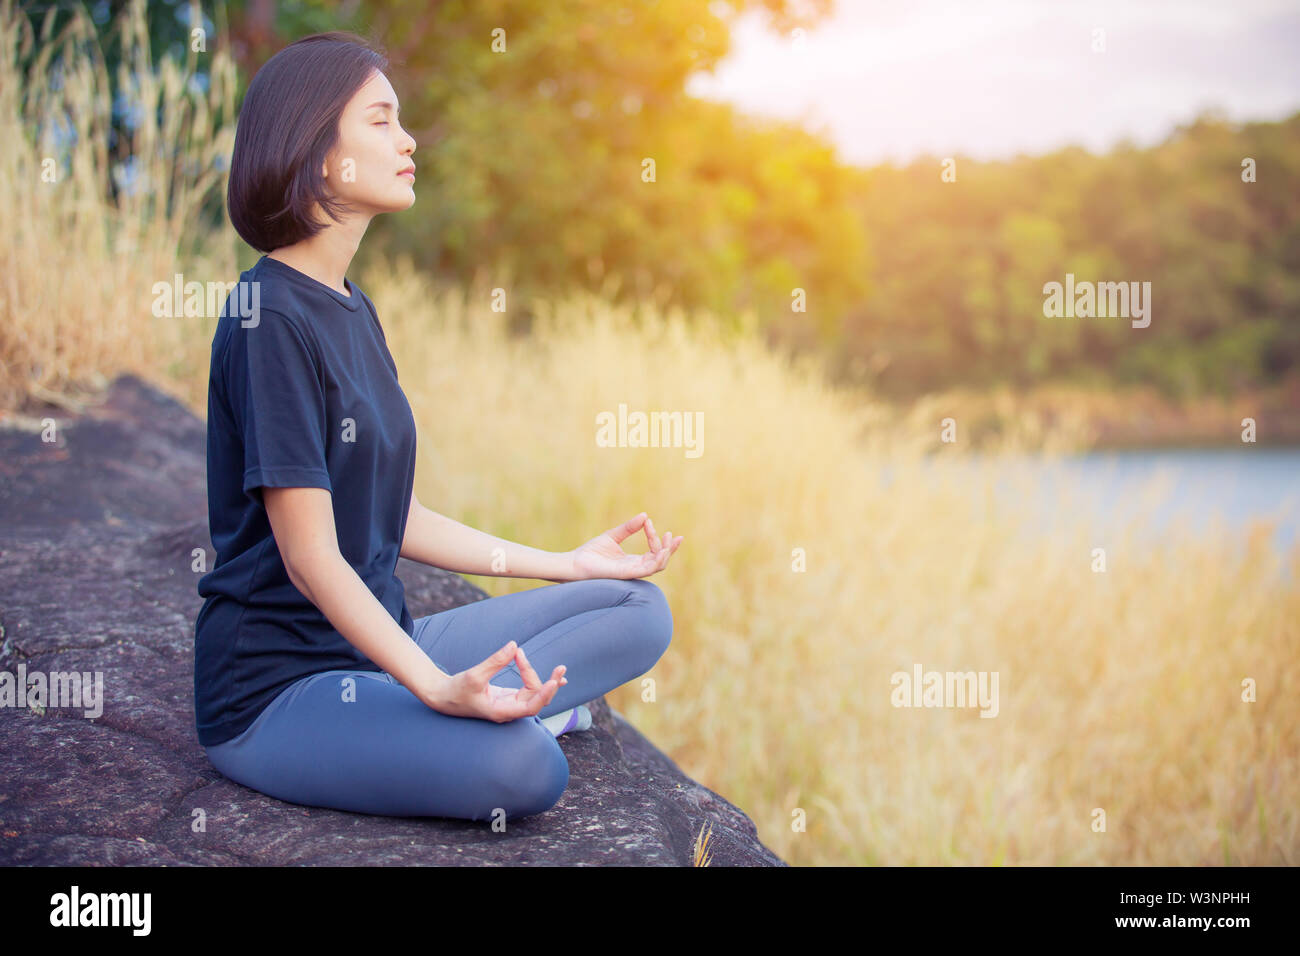 asian woman Yoga relax in nature to relax outdoor - Stock Image